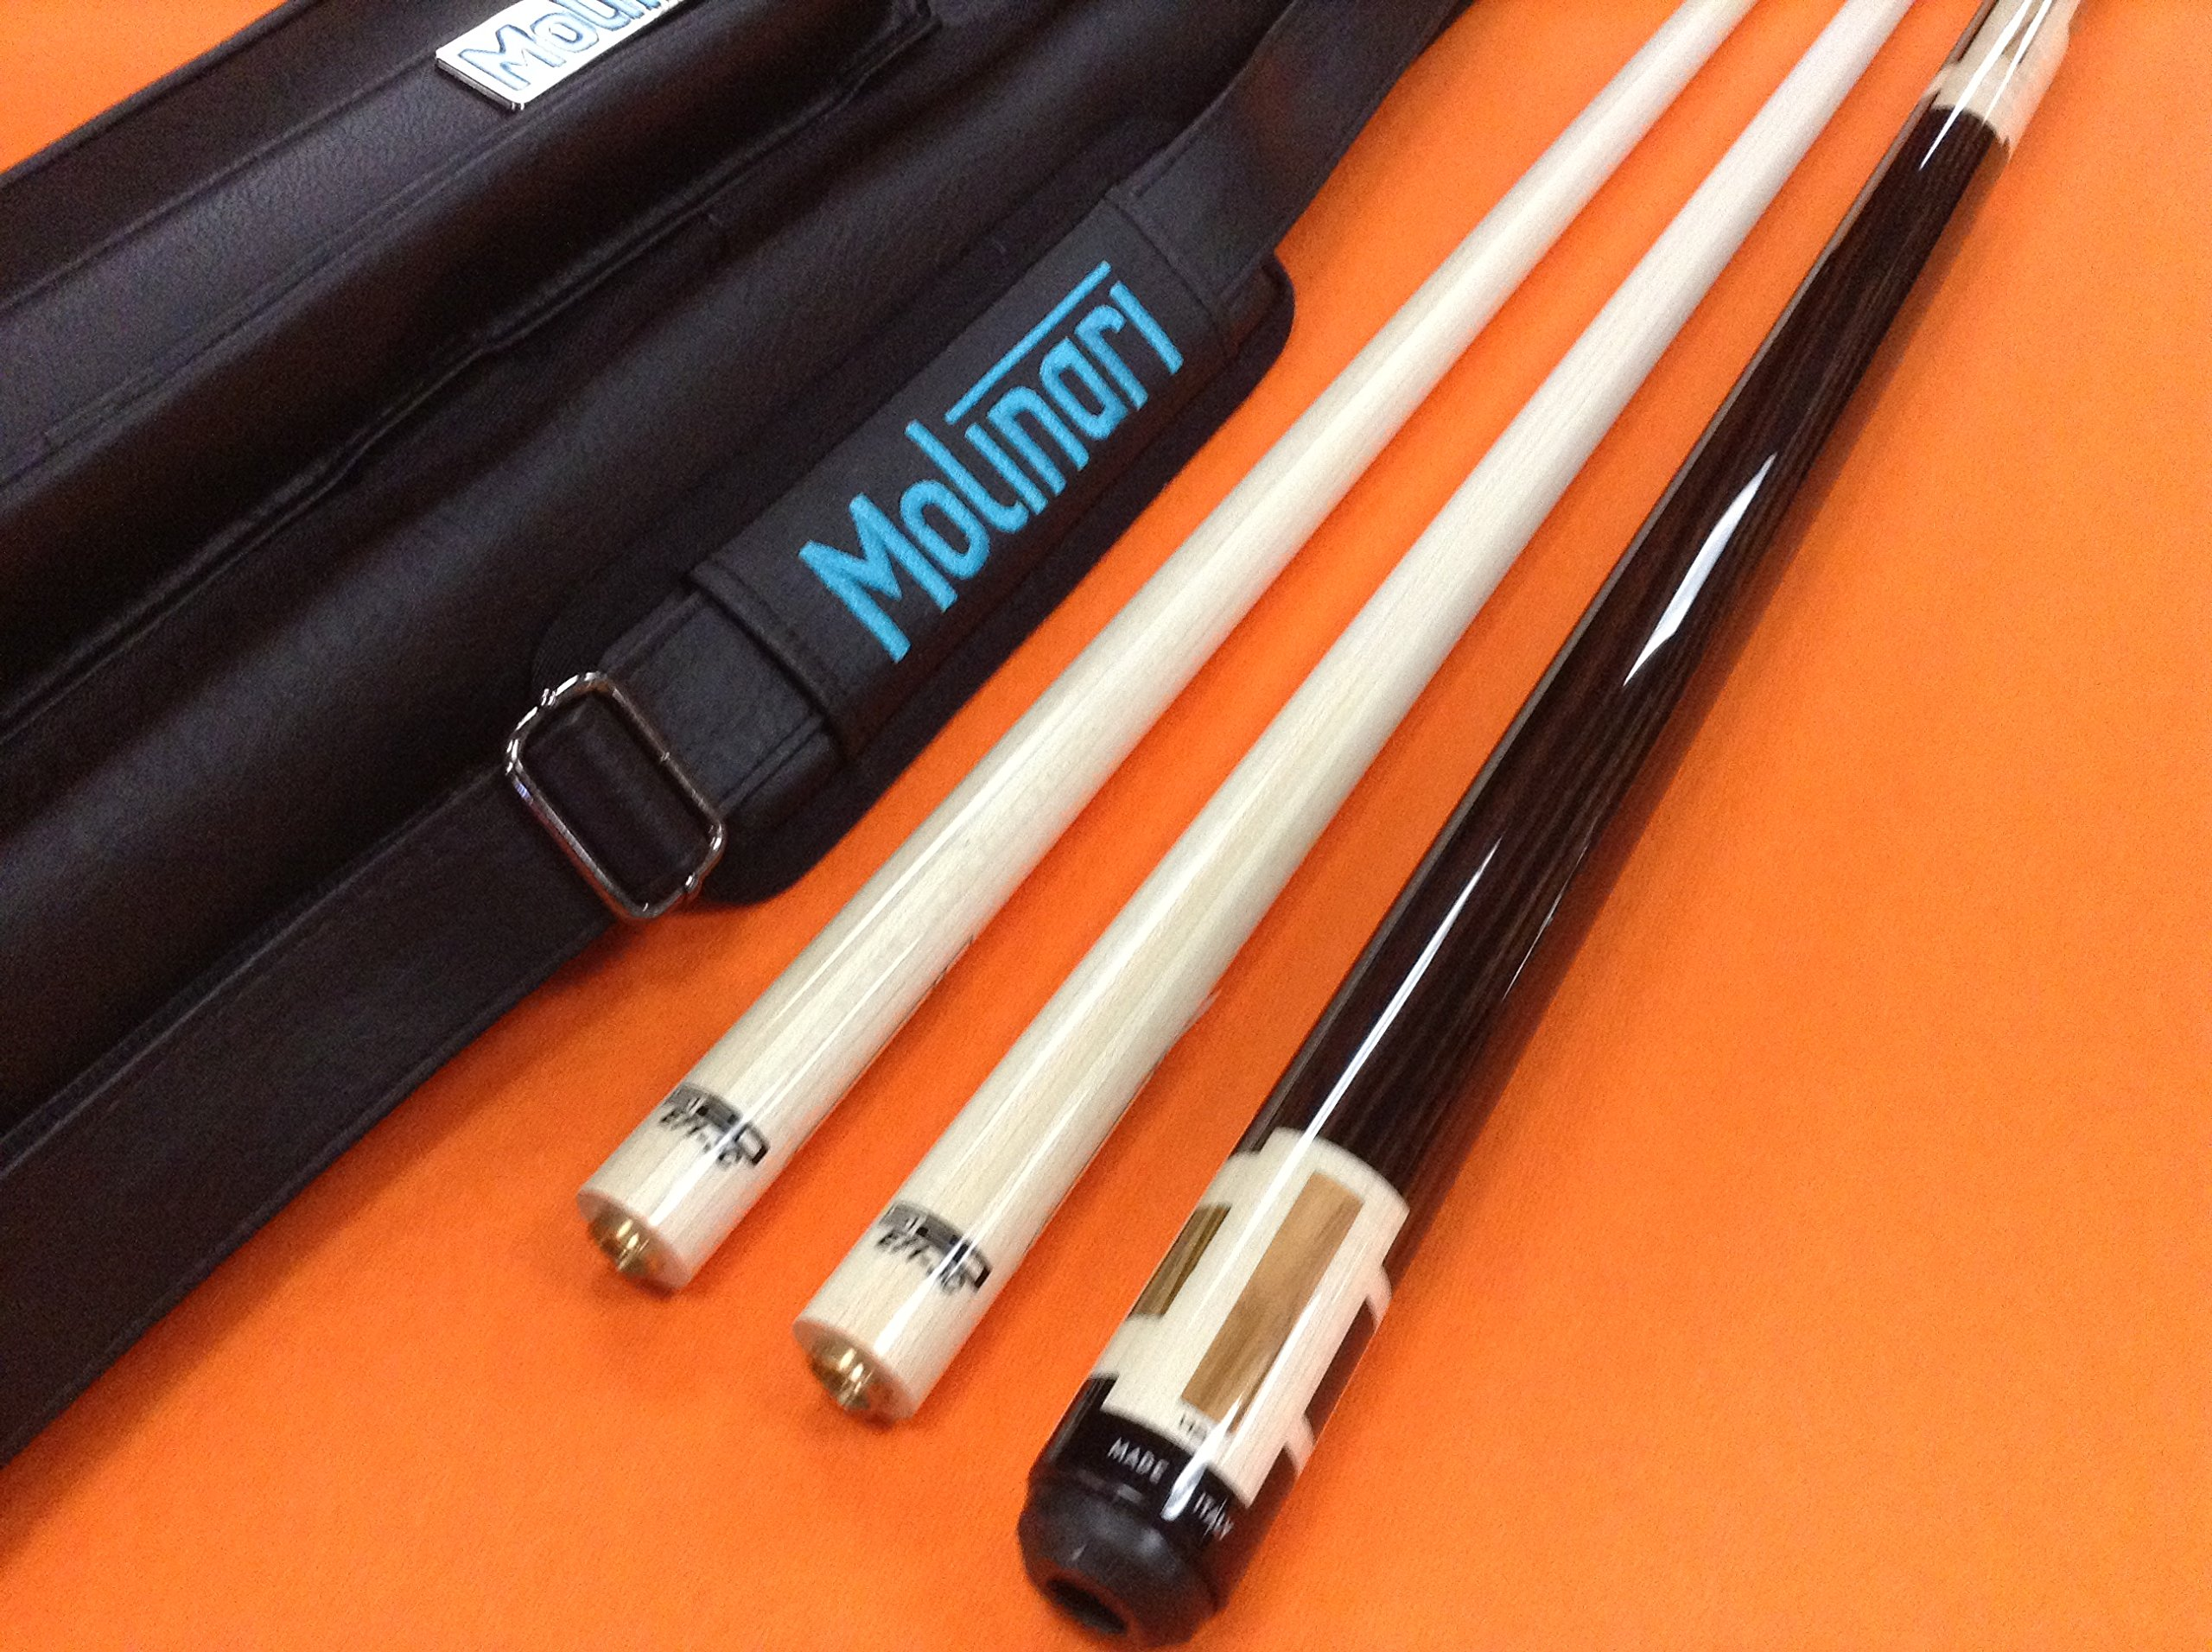 LONGONI CAROM CUE EVOLUZIONE WITH TWO S20 SHAFTS & MOLINARI CASE